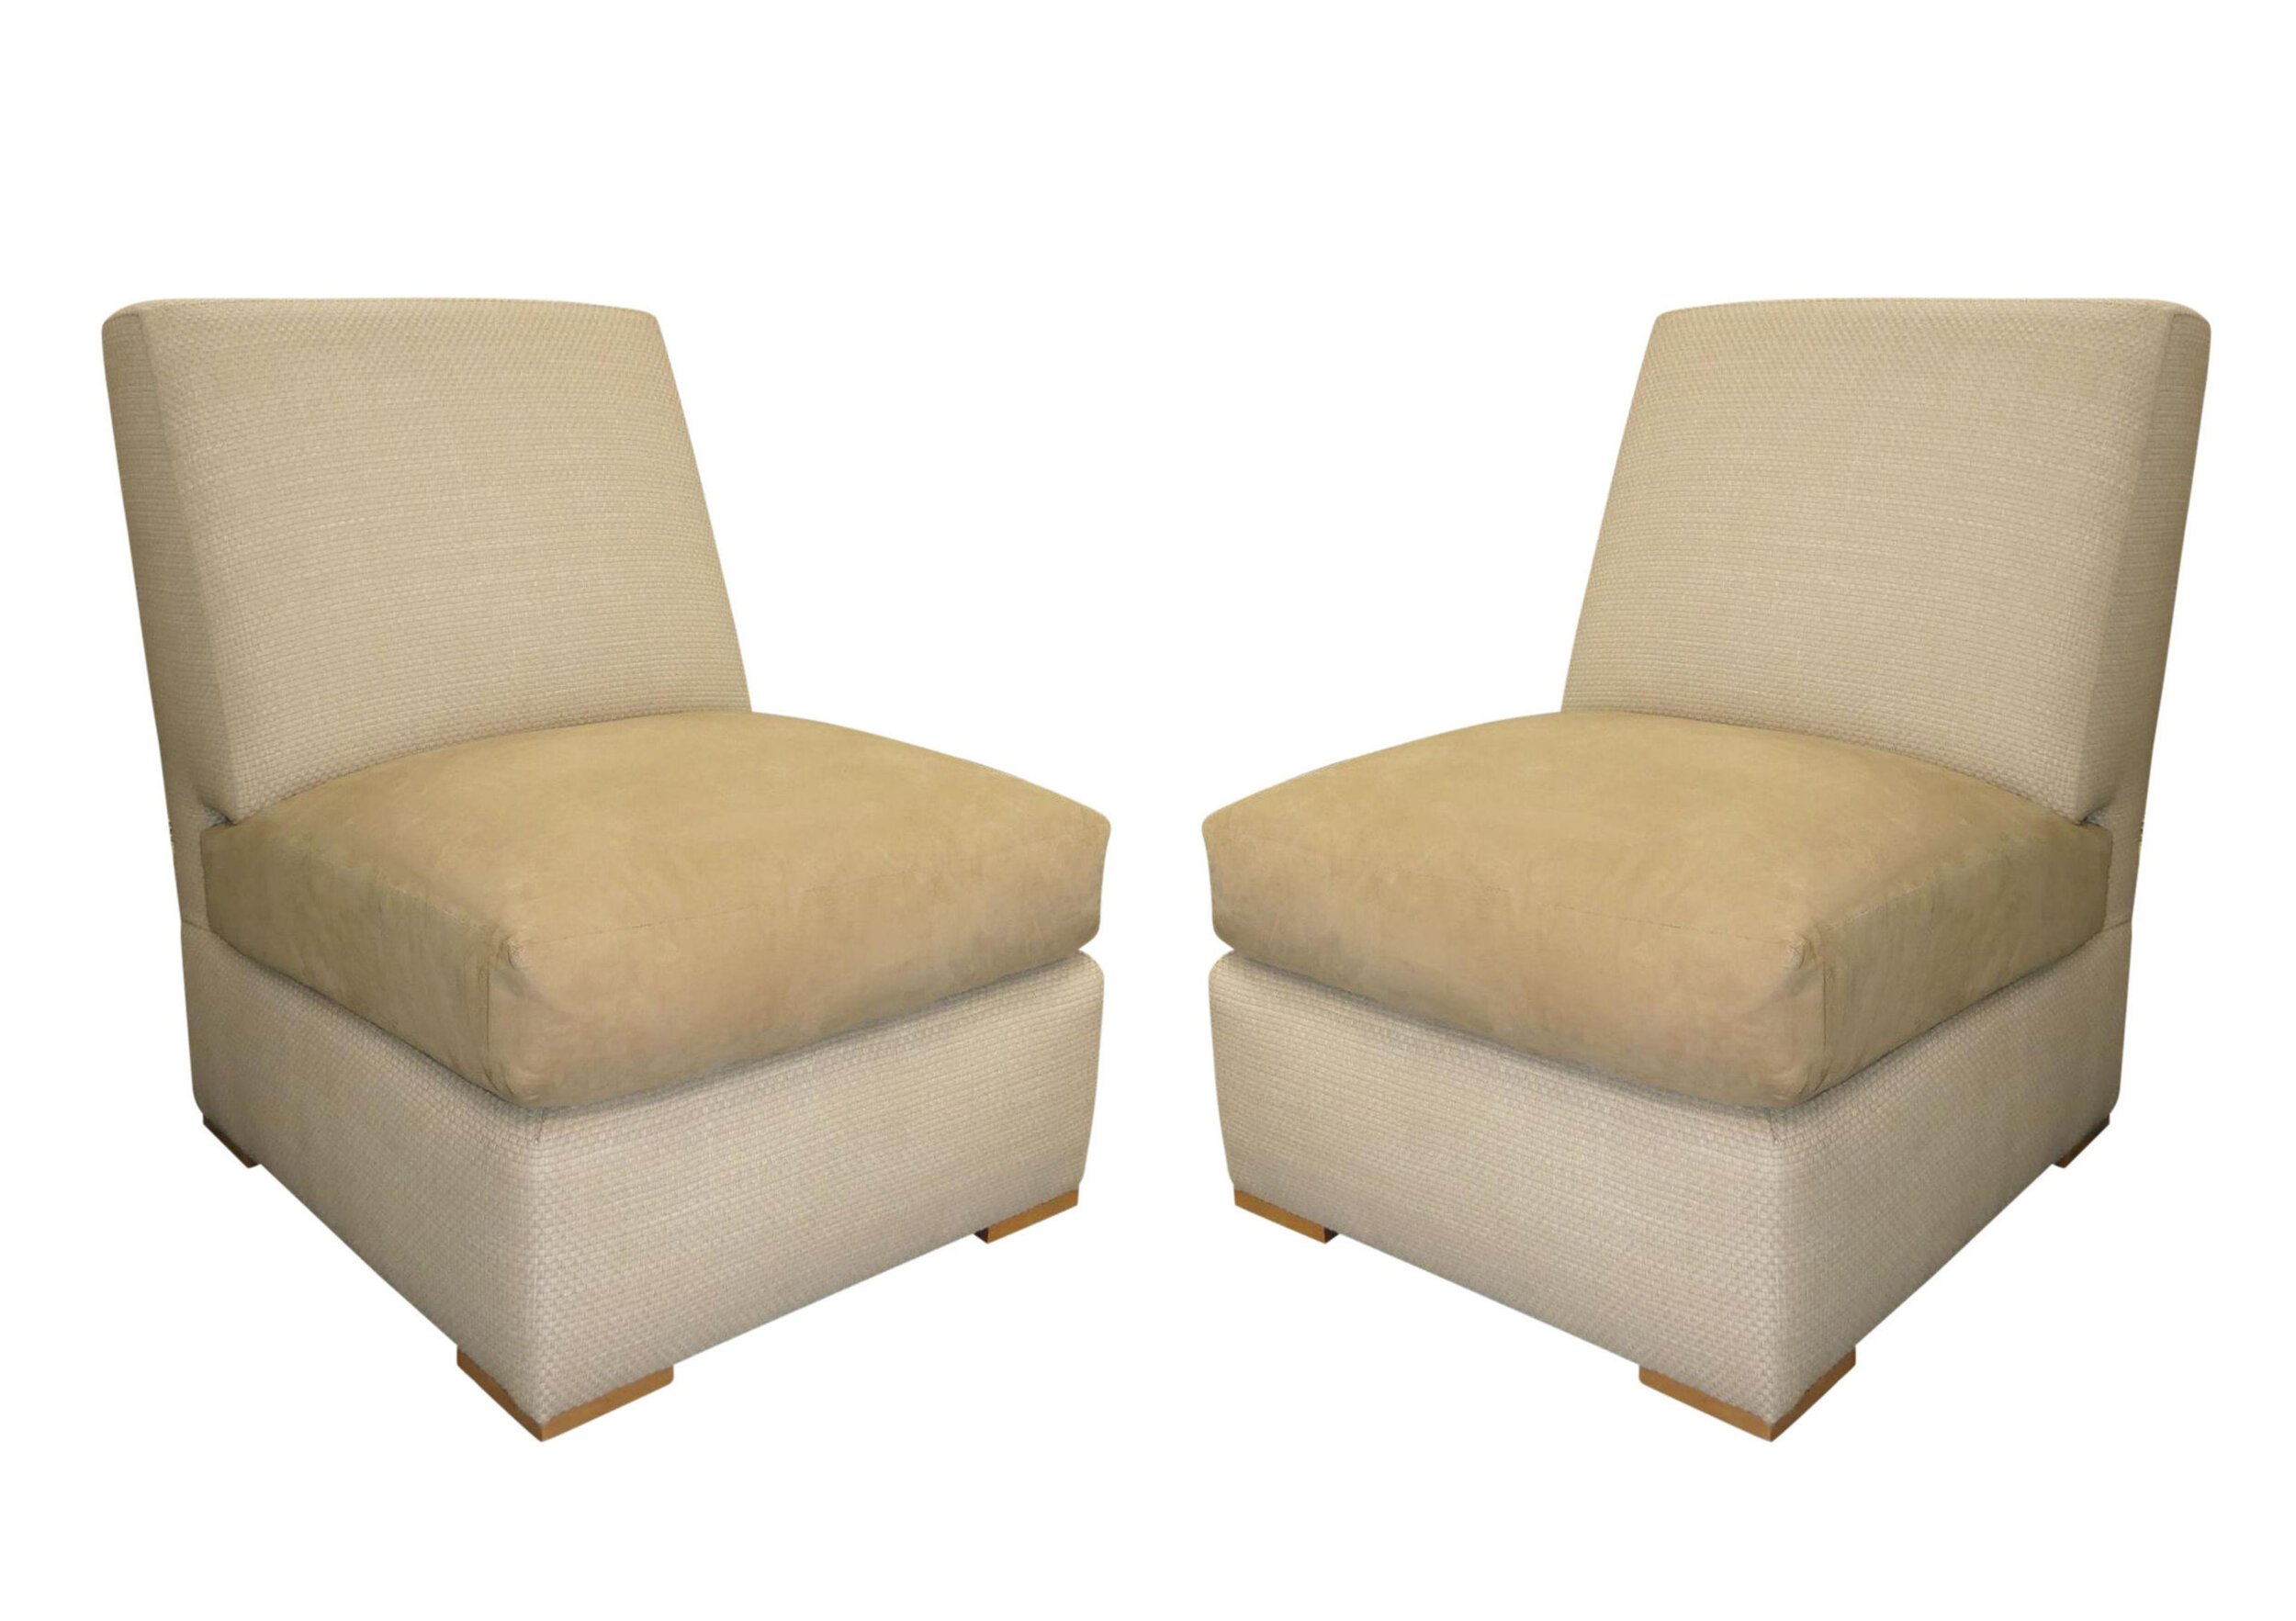 Pair of Kreiss Slipper Chairs 4 Chairs Available